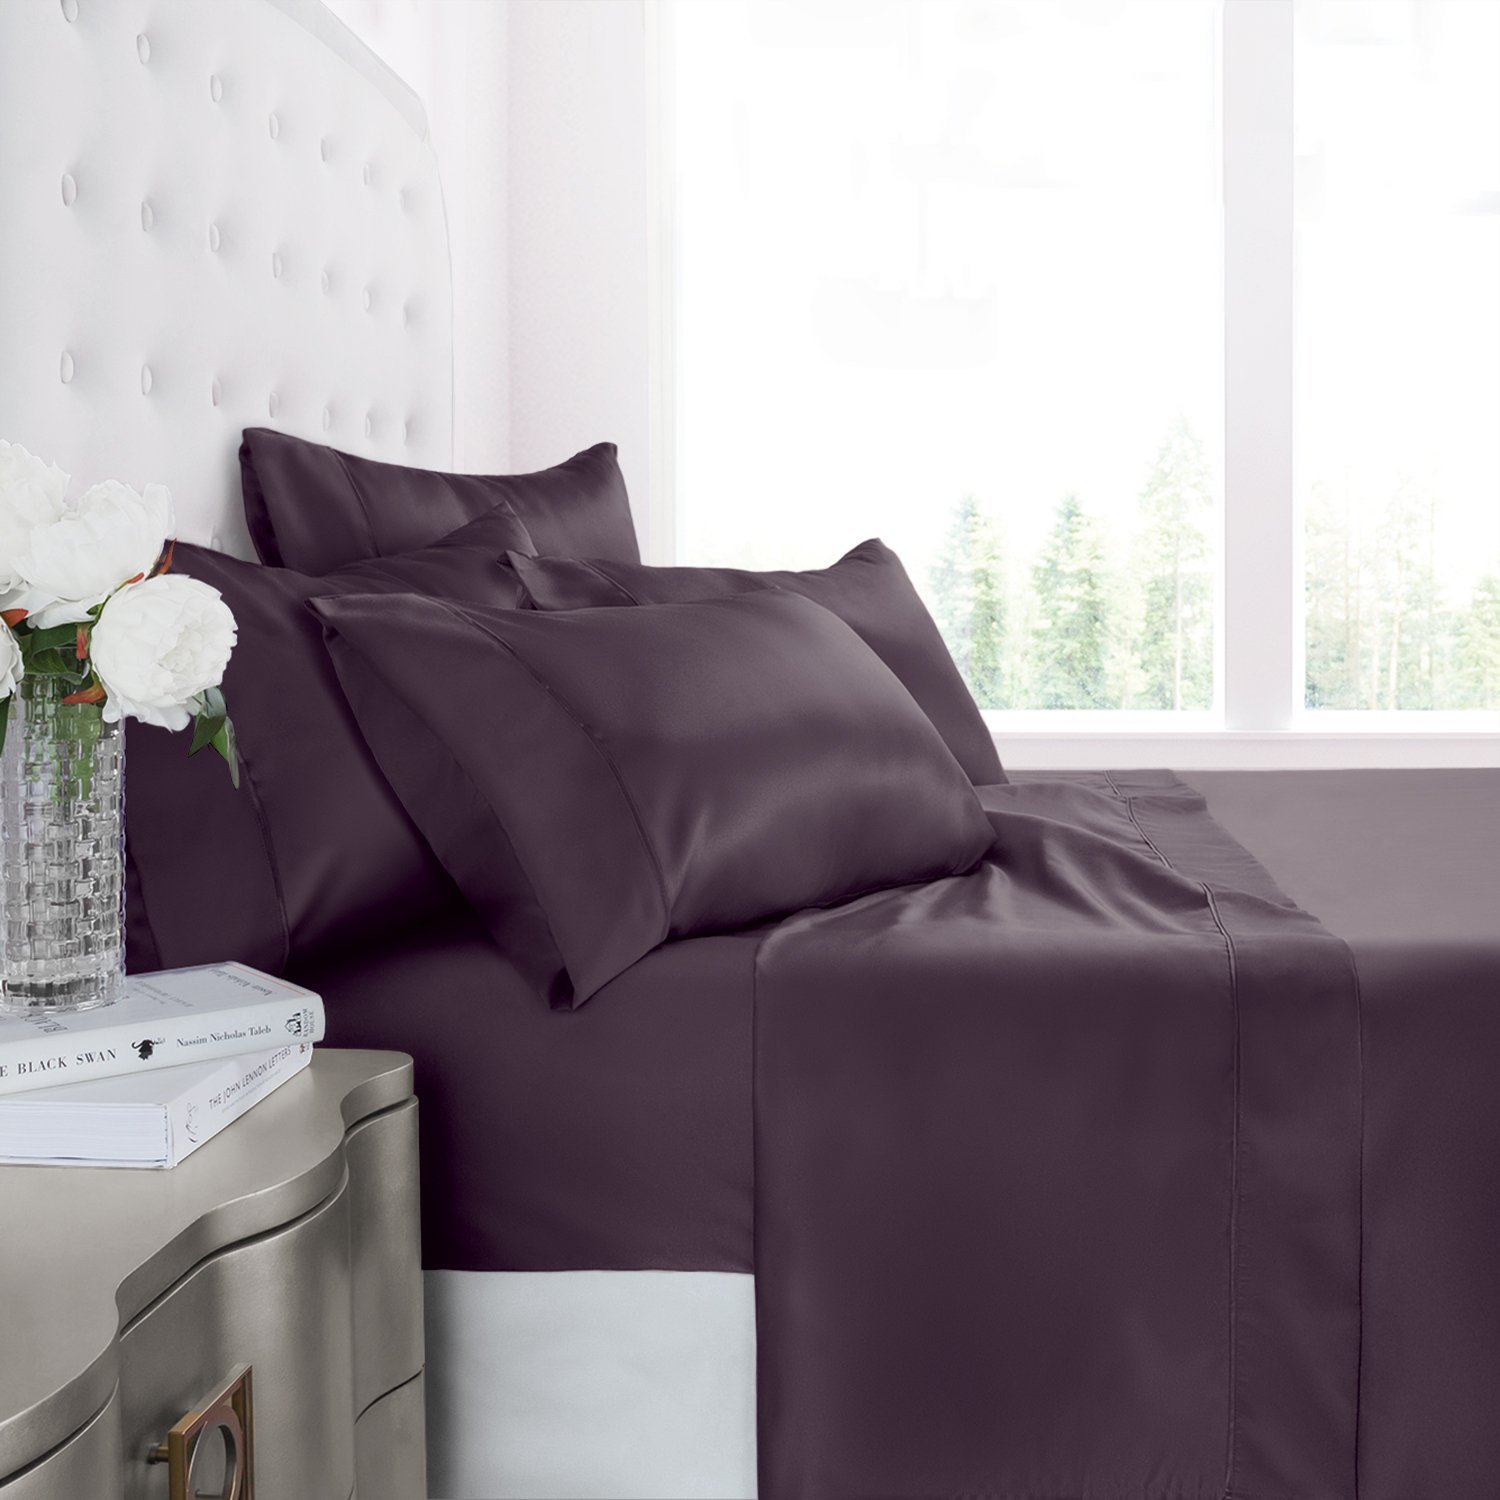 Egyptian Luxury 1200 Series Silky Soft Satin 4-Piece Bed Sheet Set - Ultra Smooth Satin Microfiber - Wrinkle and Fade Resistant, Hypoallergenic Sheet and Pillow Case Set -King - Purple